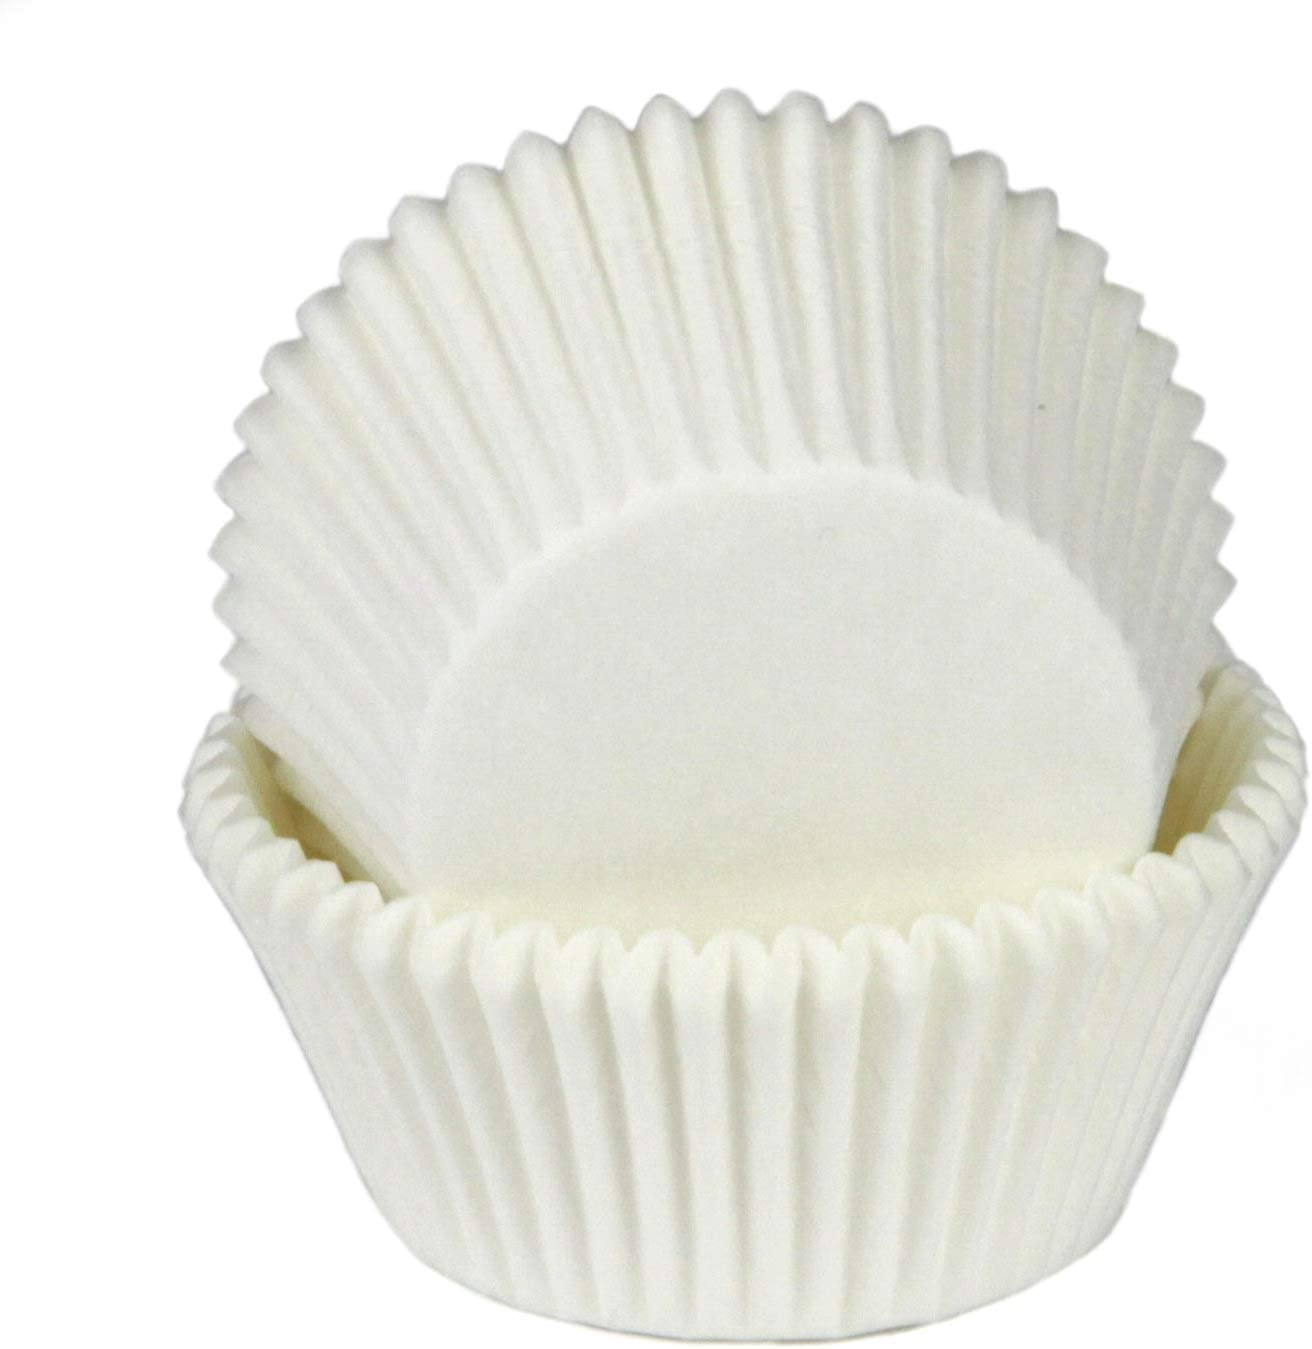 Chef Craft Parchment Paper Cupcake Liners, One Size, White